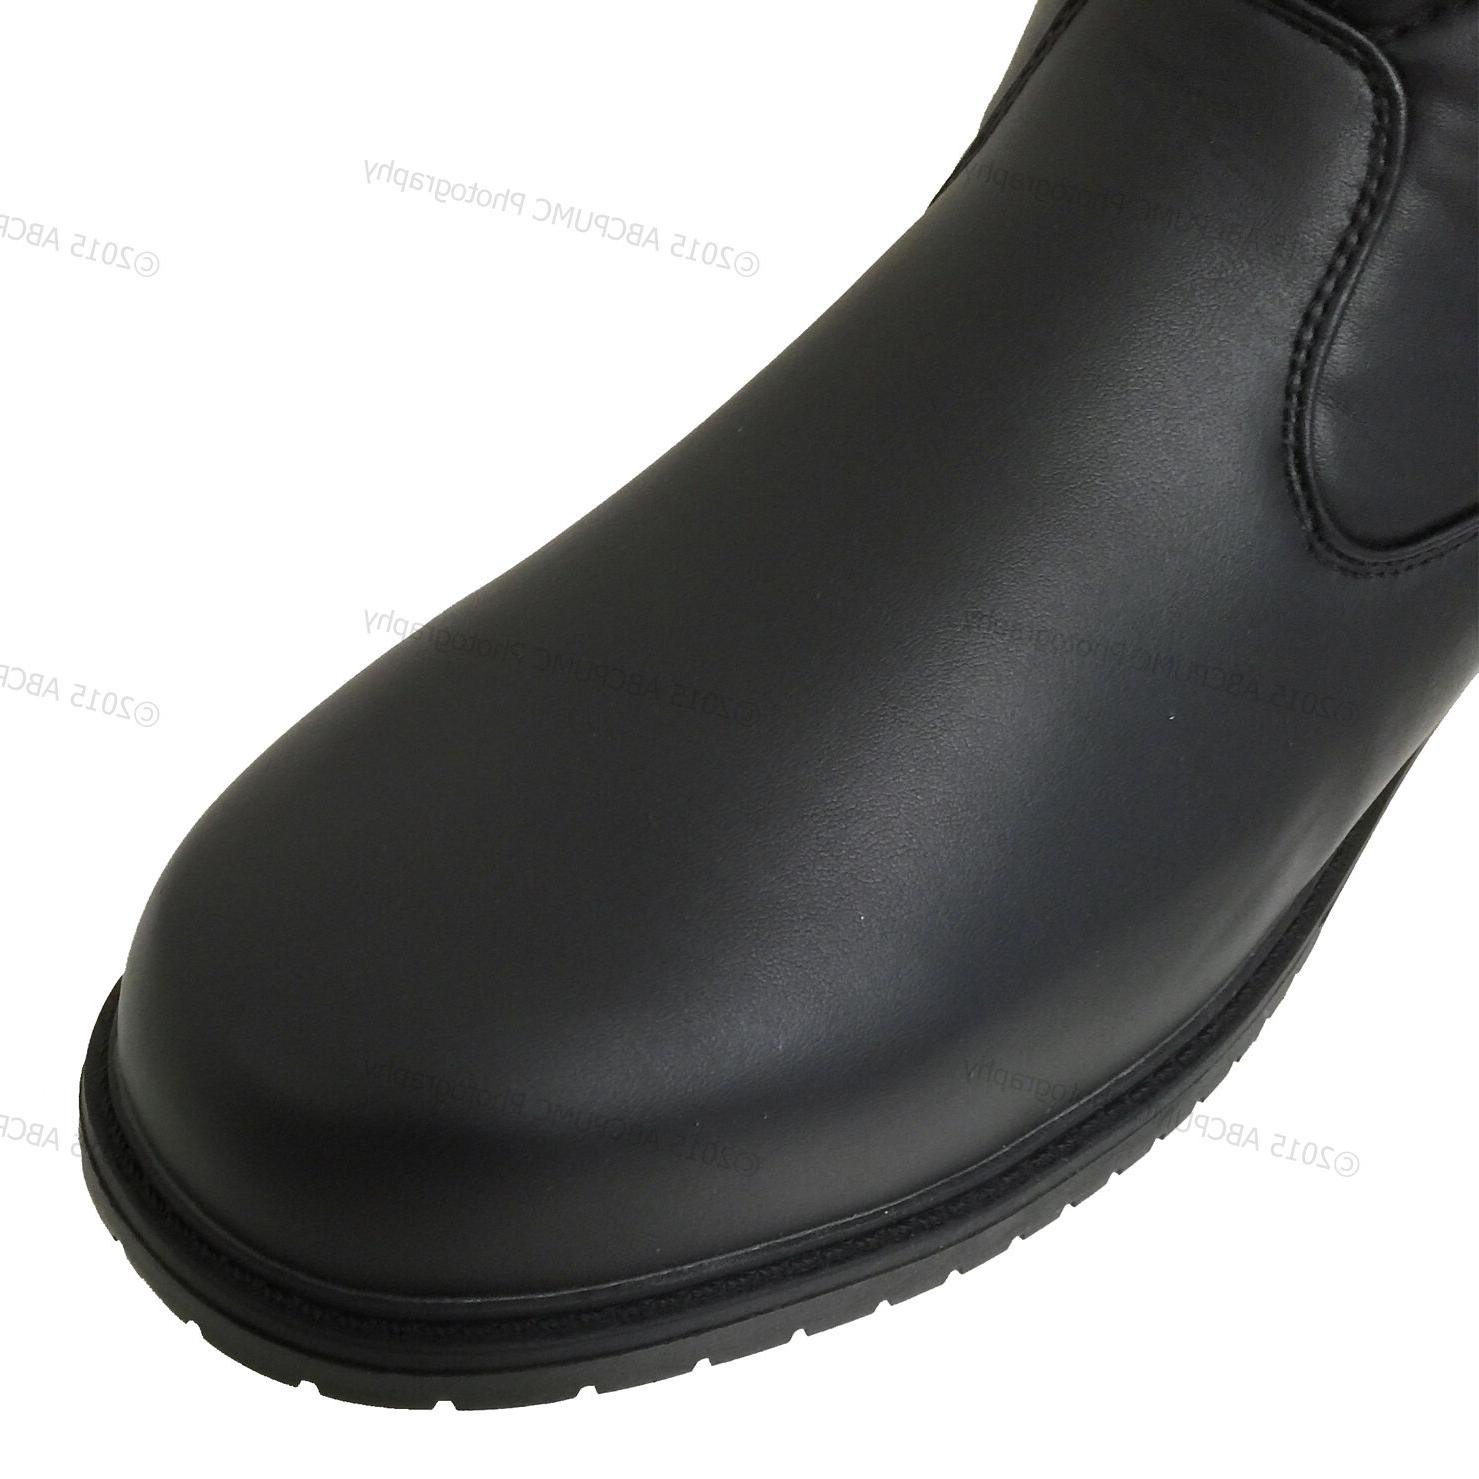 Brand New Men's Boots Fur Lined